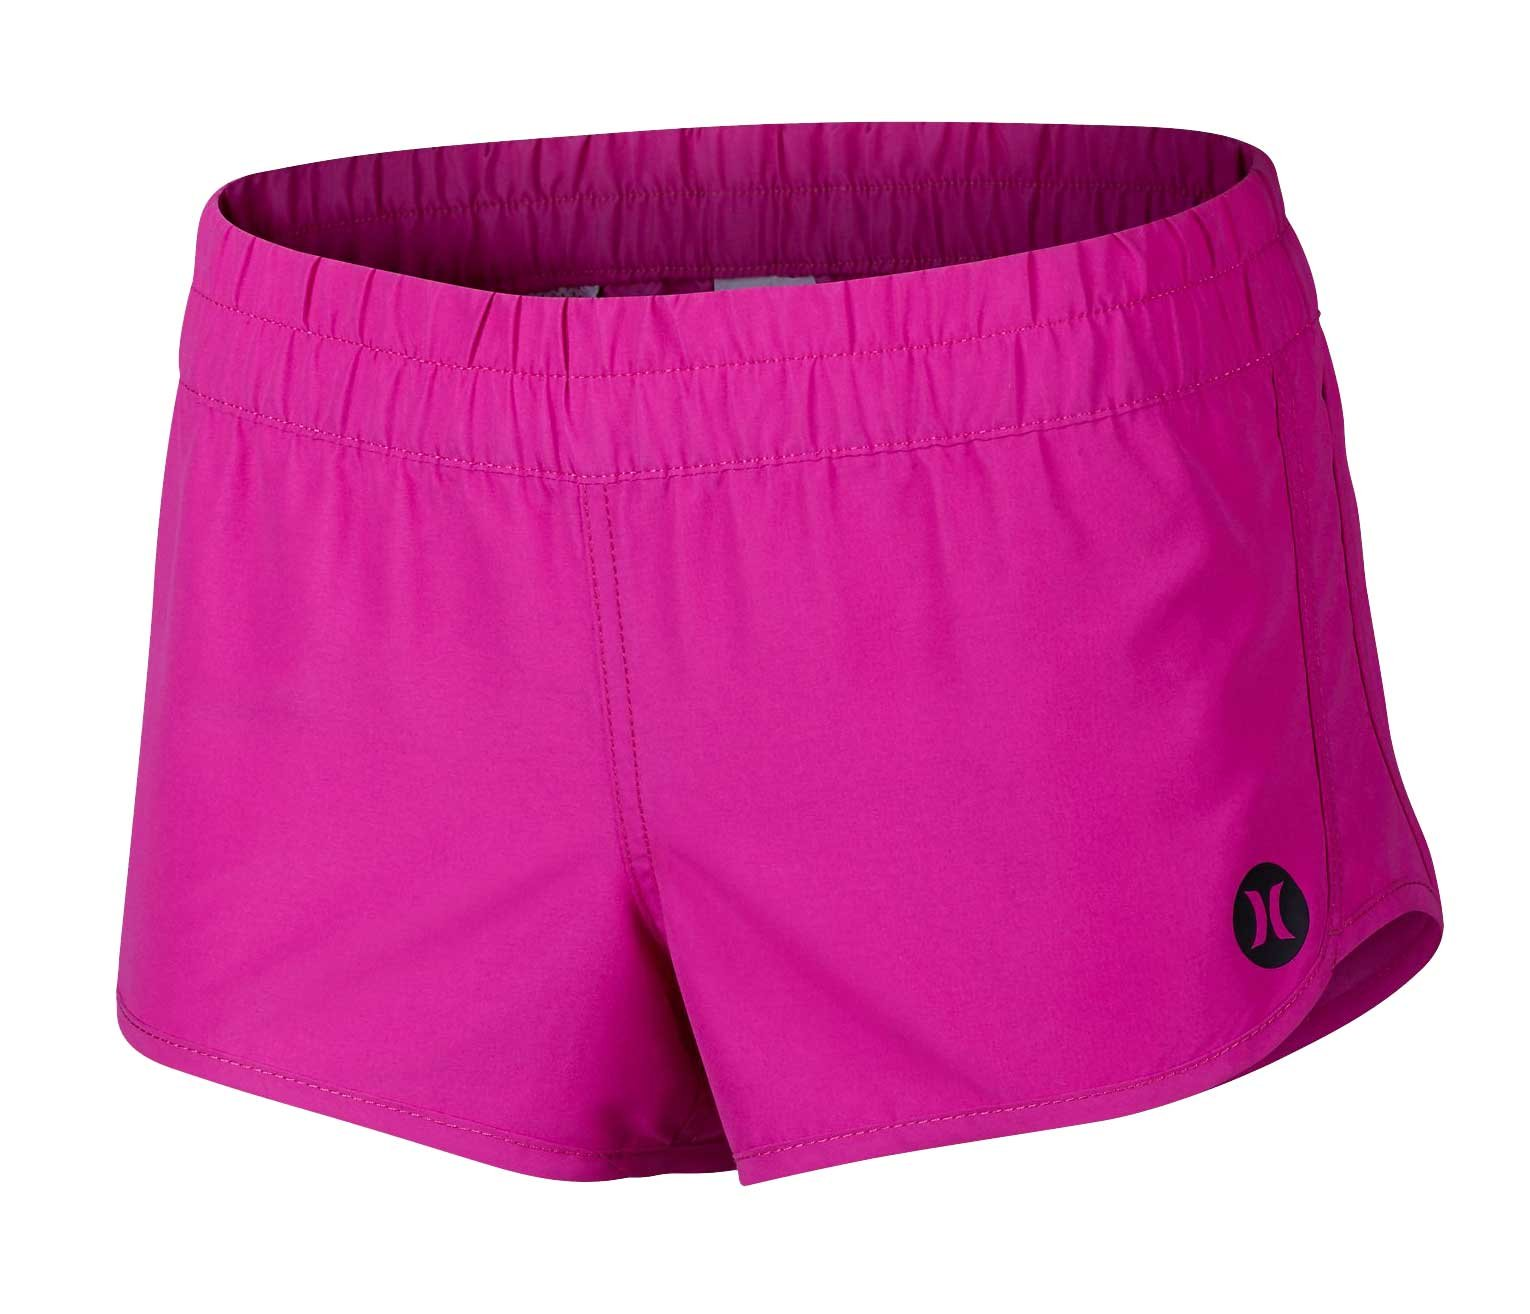 Hurley Supersuede Solid Beachrider Women's Boardshorts - Fire Pink - XL